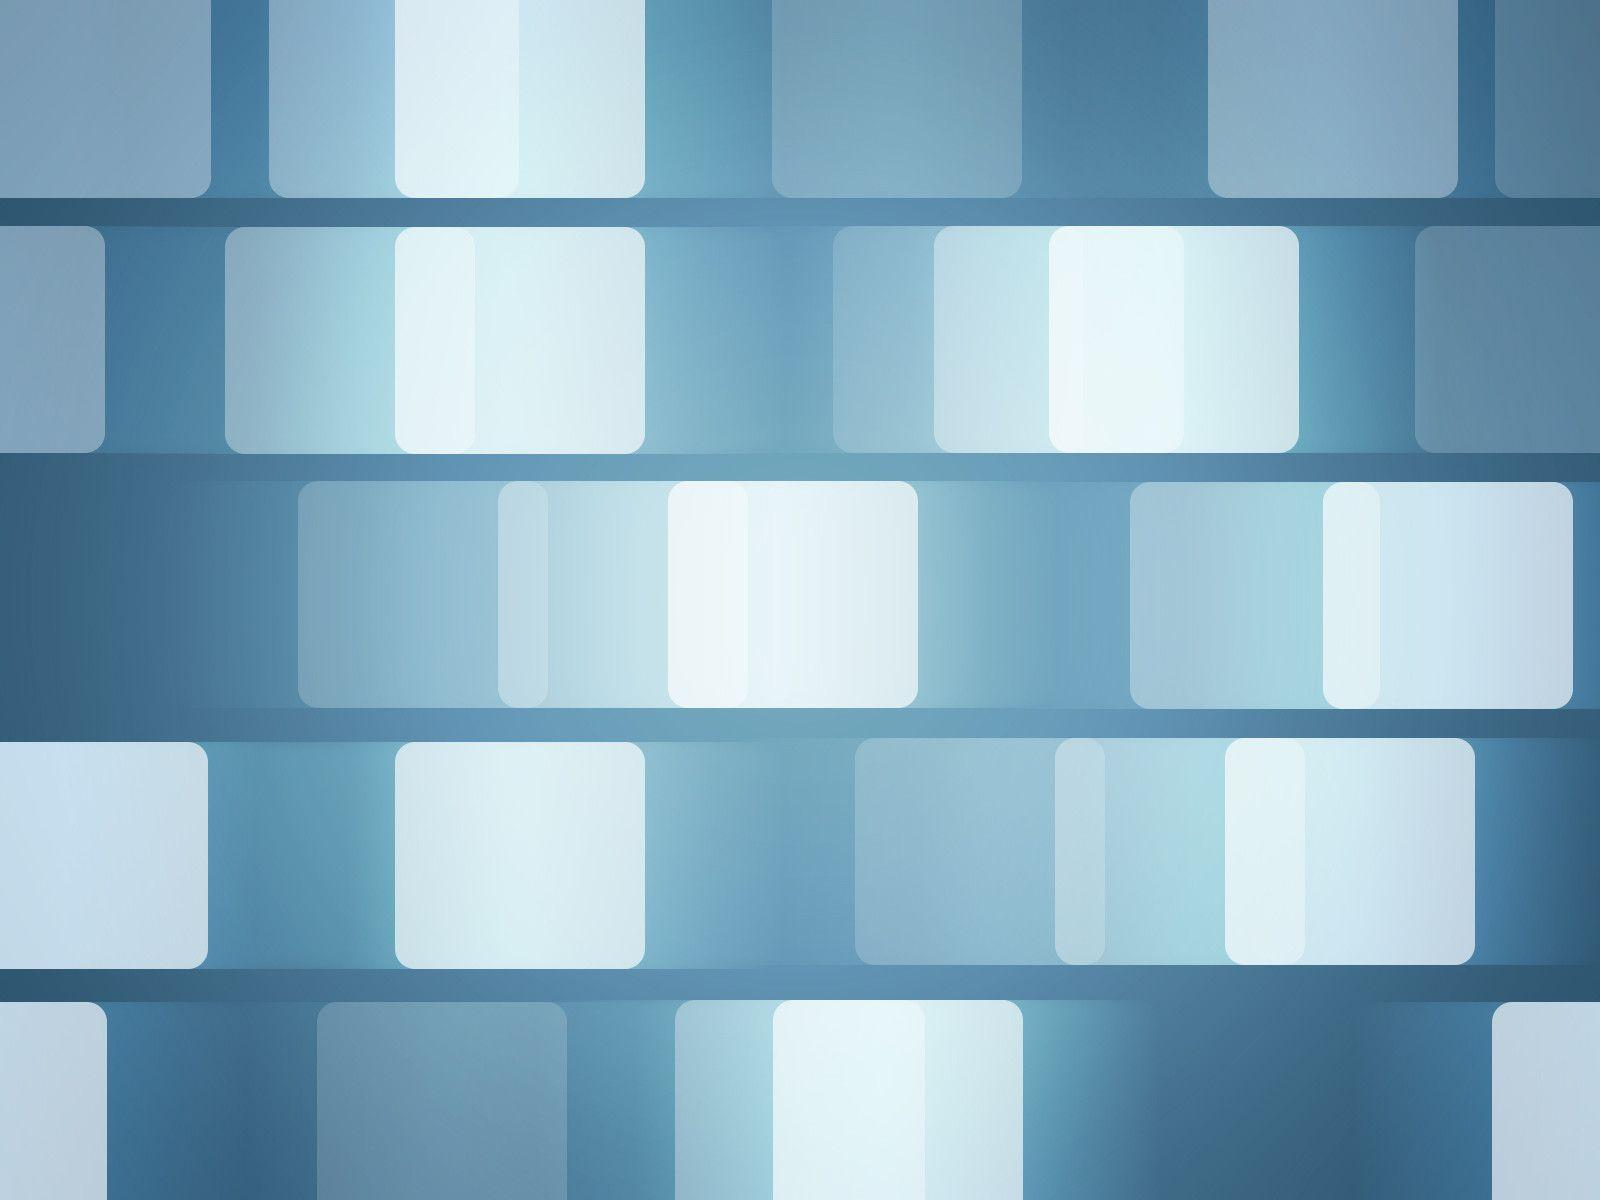 neutral backgrounds wallpaper cave